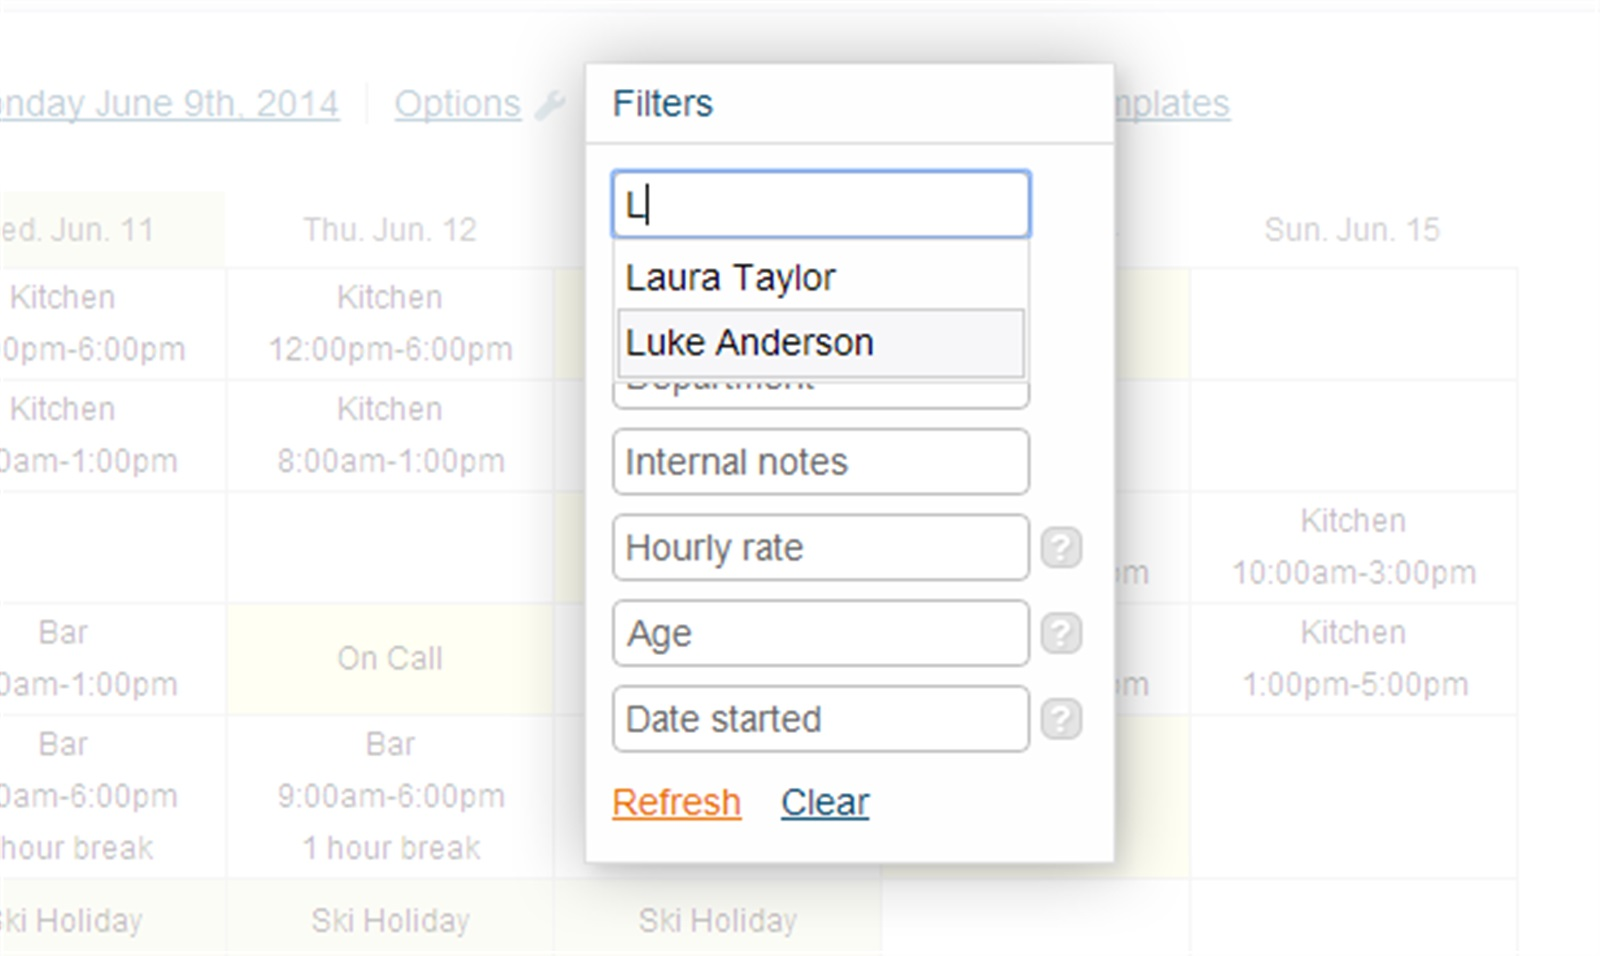 Auto-complete Now Available with Filters